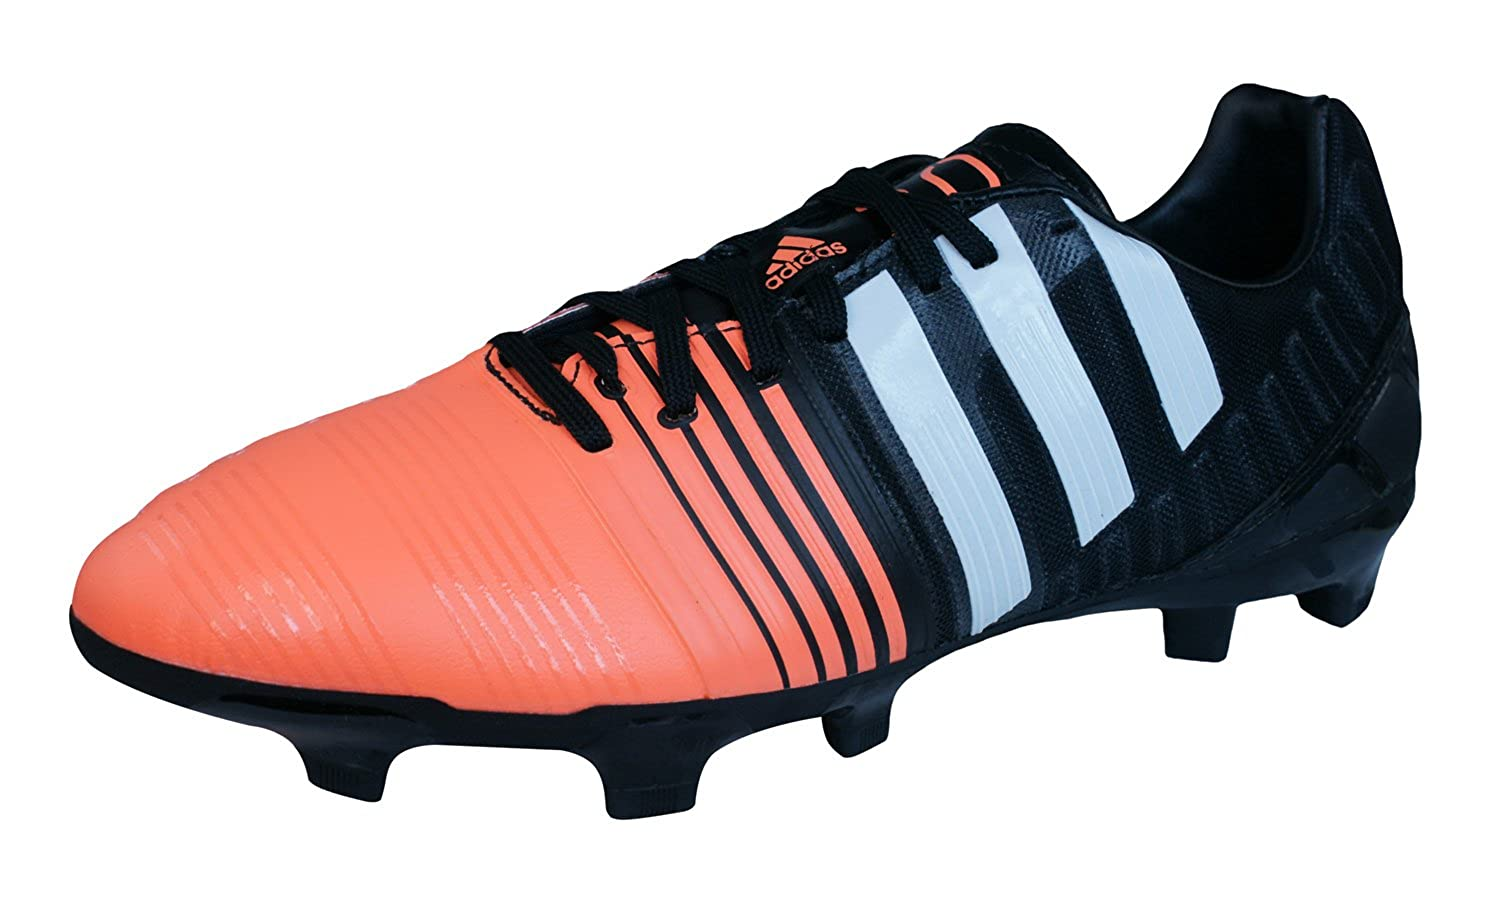 Adidas Nitrocharge 2,0 Fg - Hombres